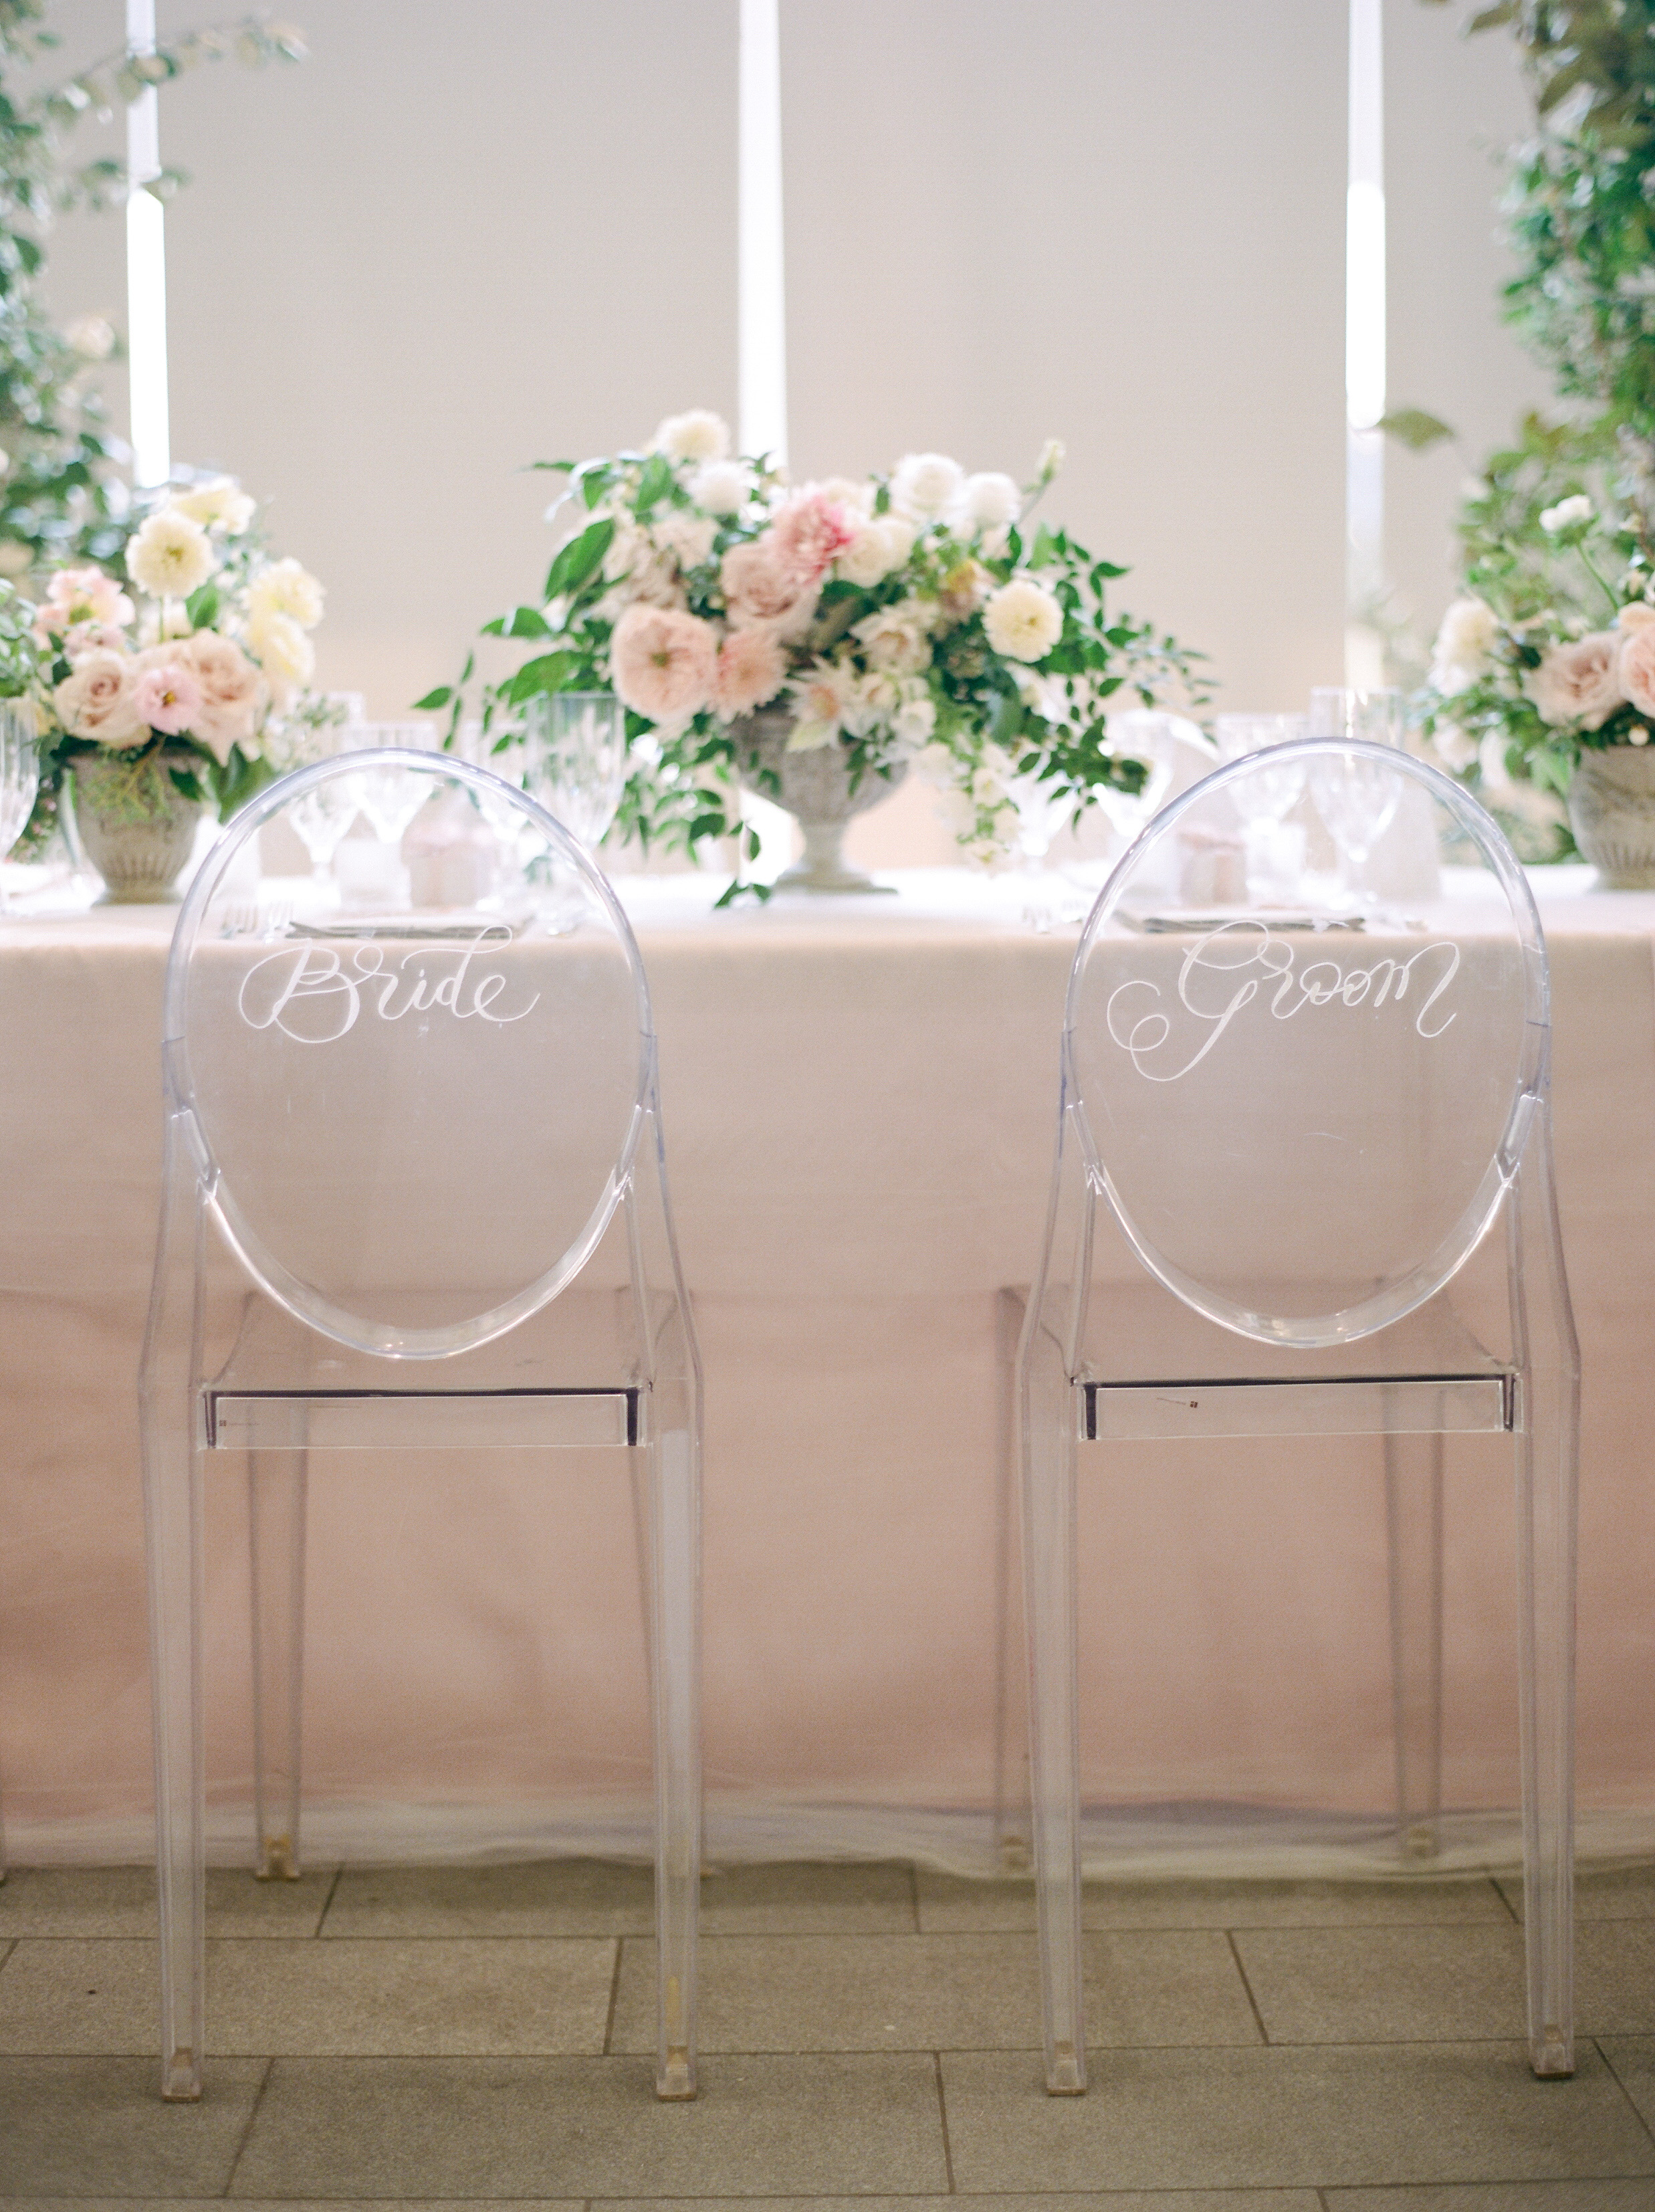 Wedding Chair Rentals.Popular Wedding Rental Chair Types Martha Stewart Weddings